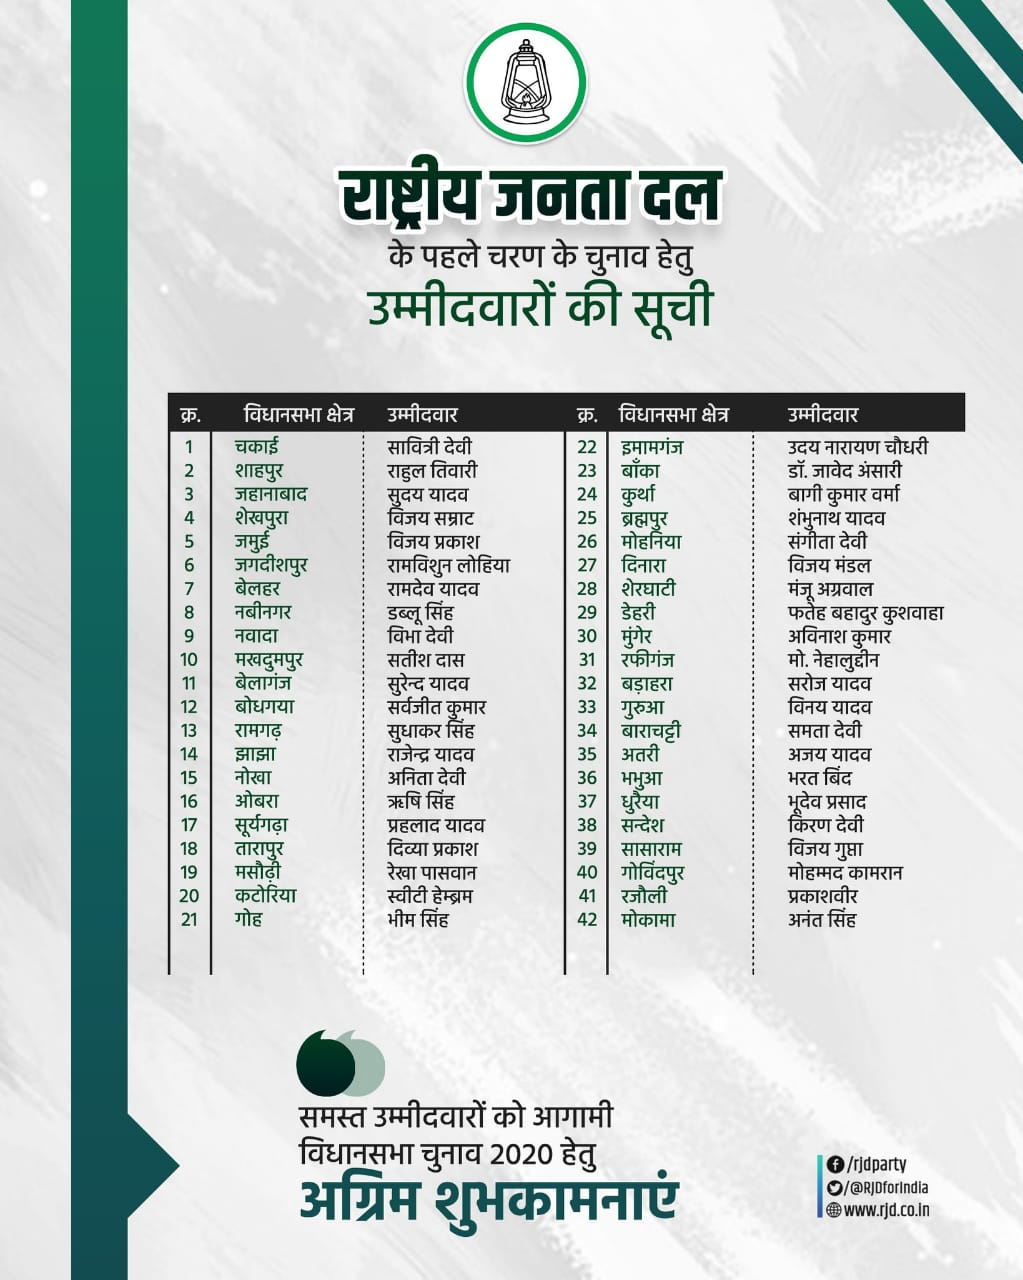 #Breaking: RJD releases first list of candidates for Bihar Elections 2020